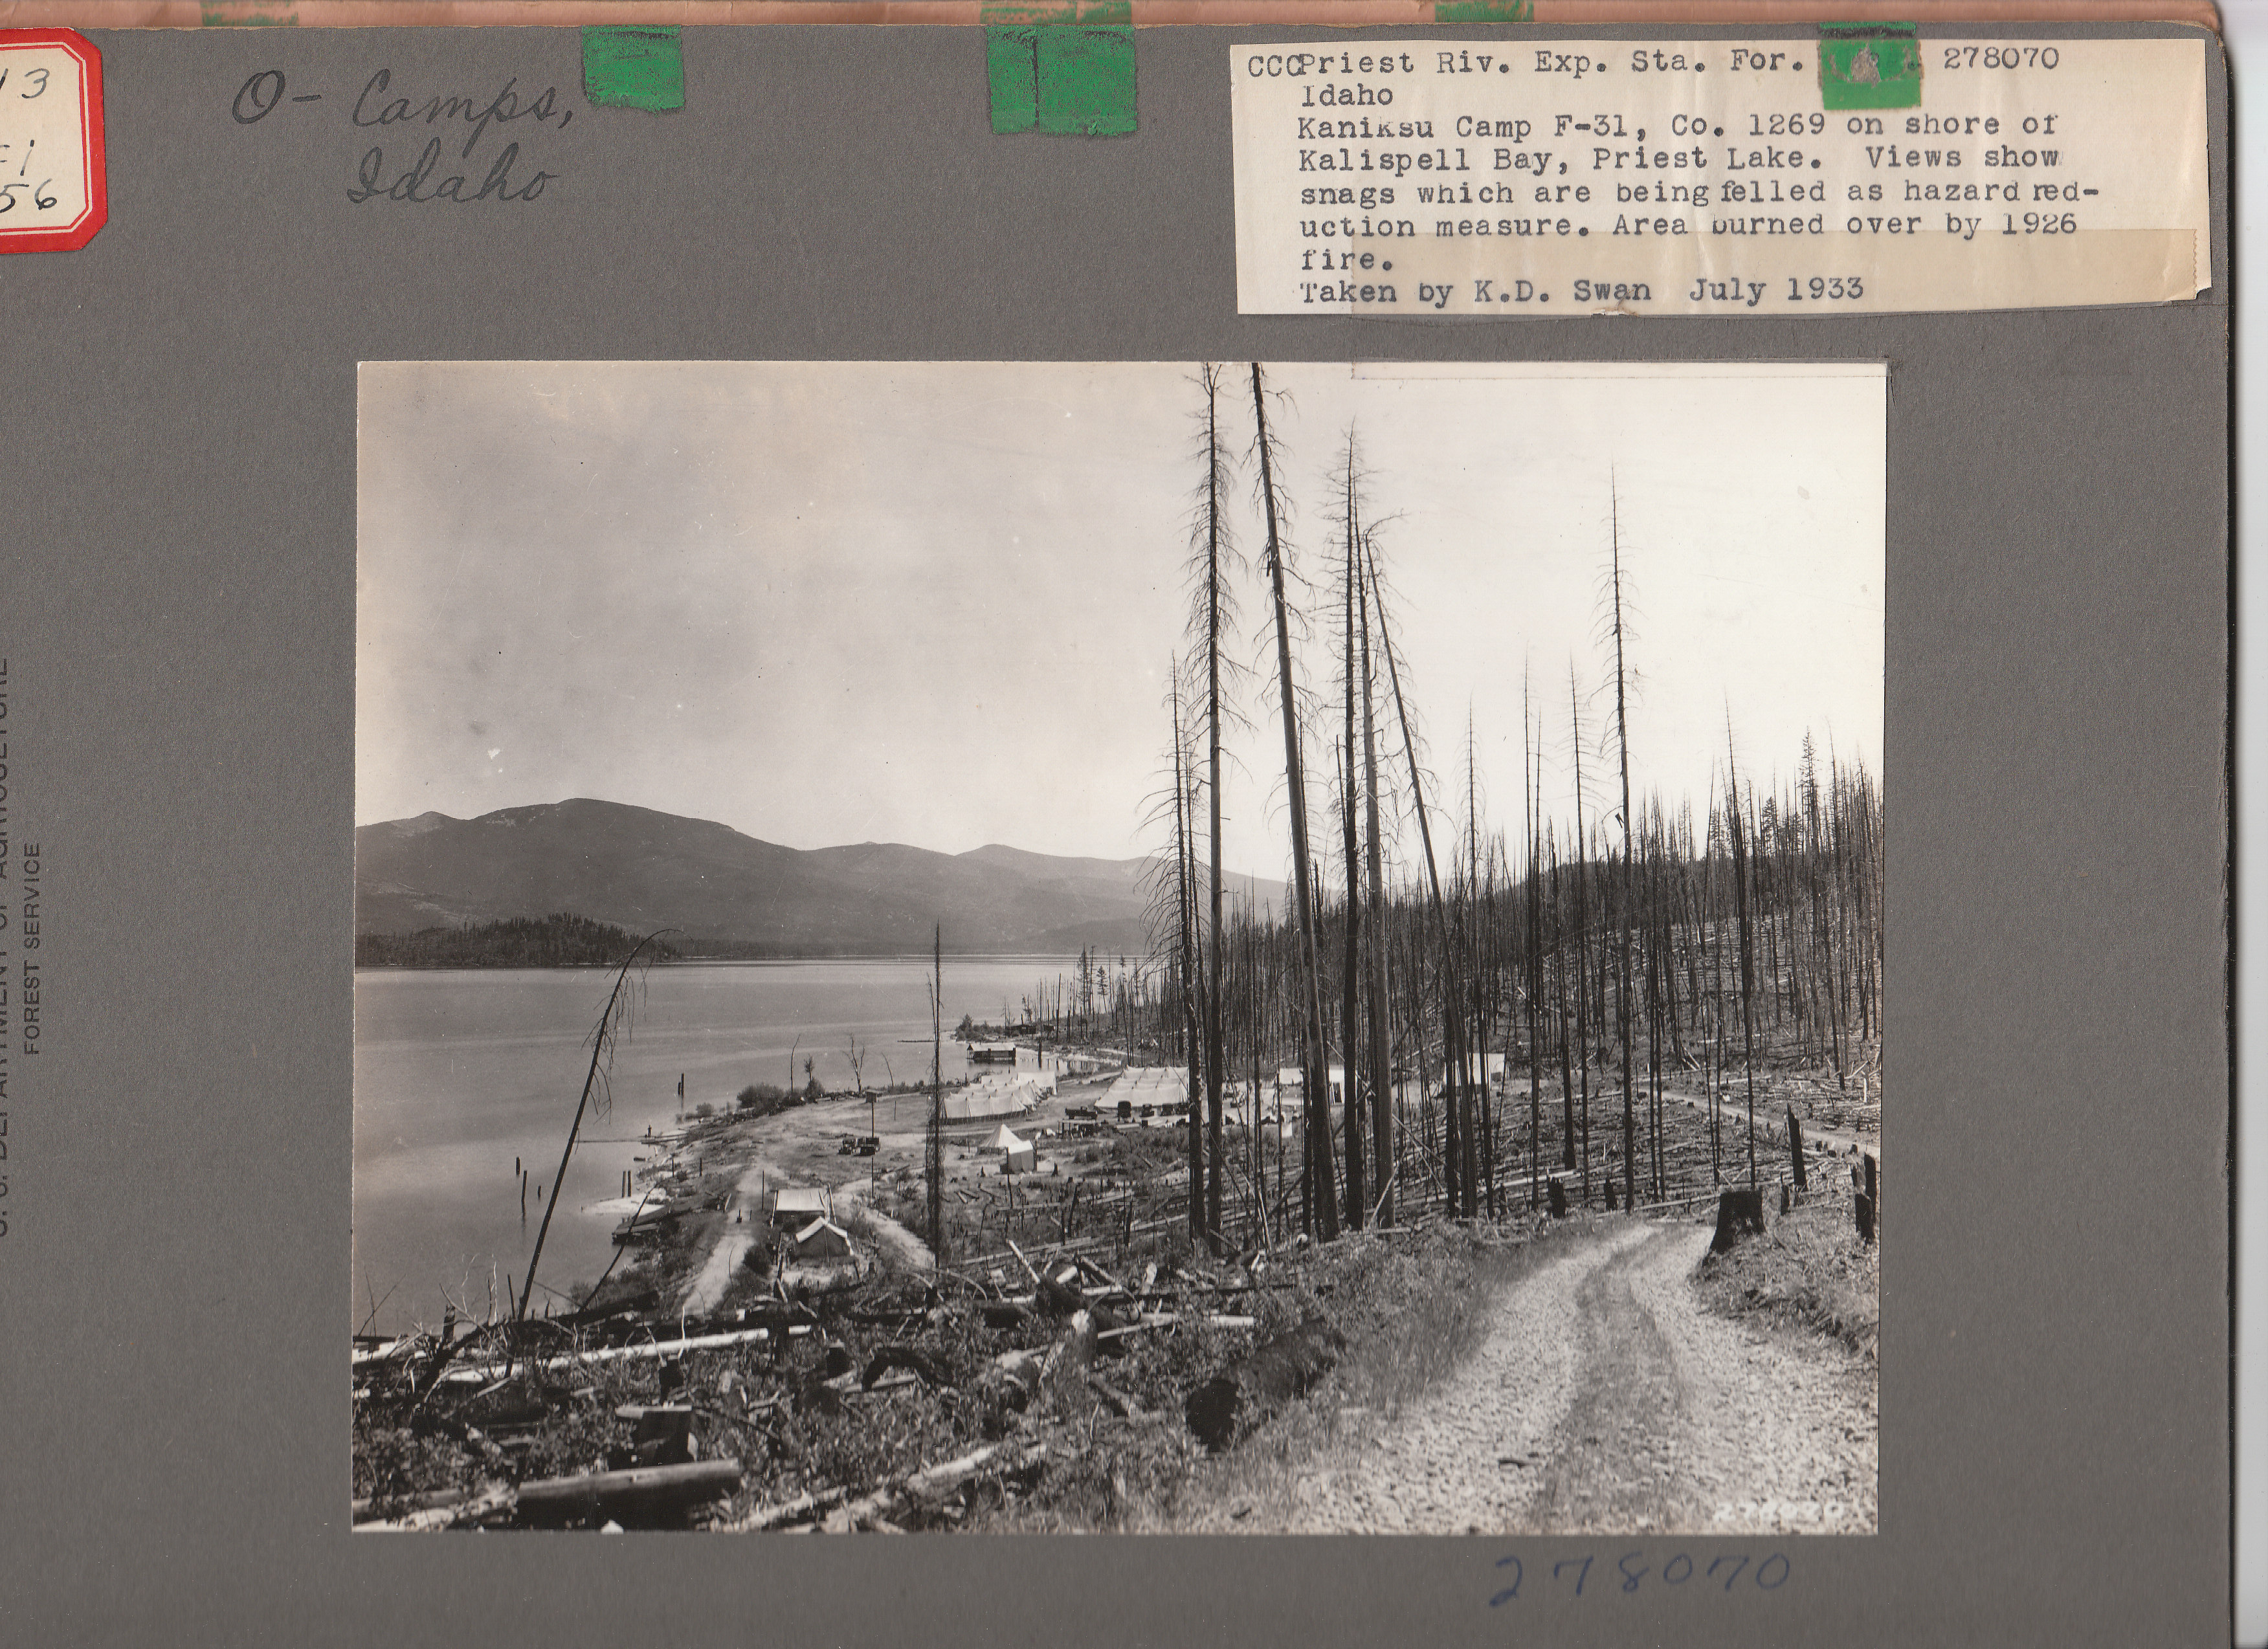 Priest Lake CCC Camp - Priest River ID - Living New Deal